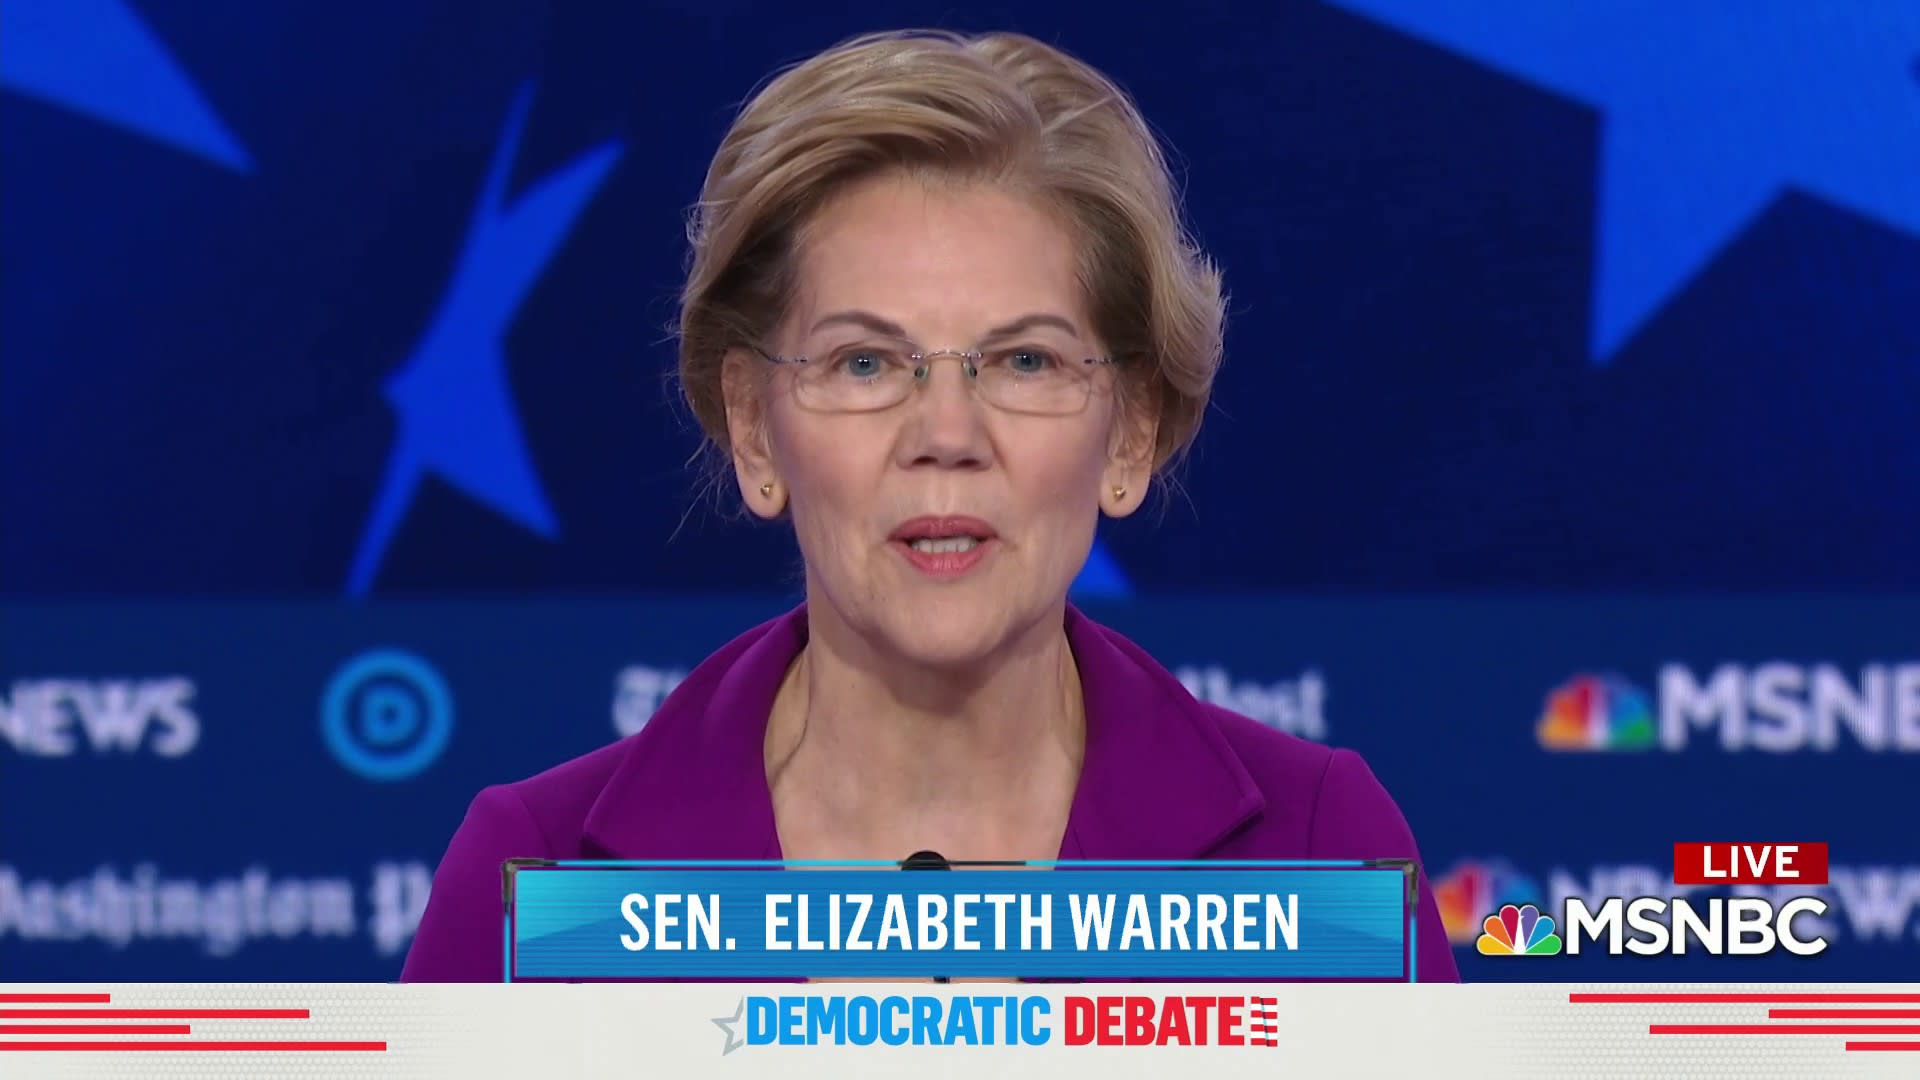 Elizabeth Warren: Doing a wealth tax is not about punishing anyone